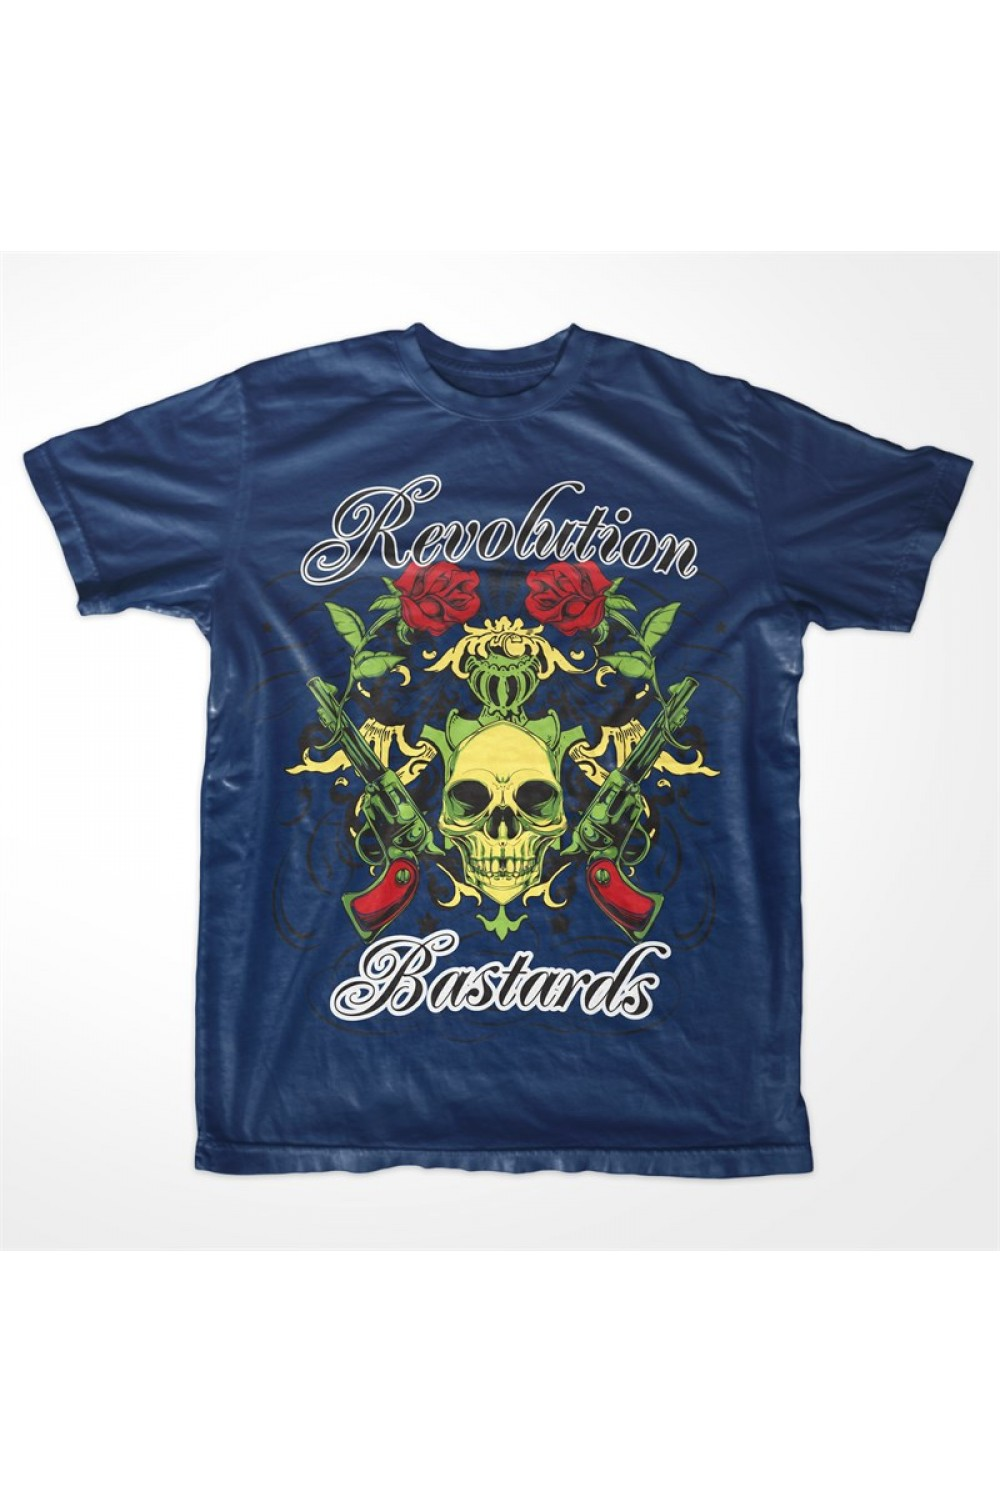 "Skulls Men Printed T-shirt 4020 ""Revolution Bastards"""